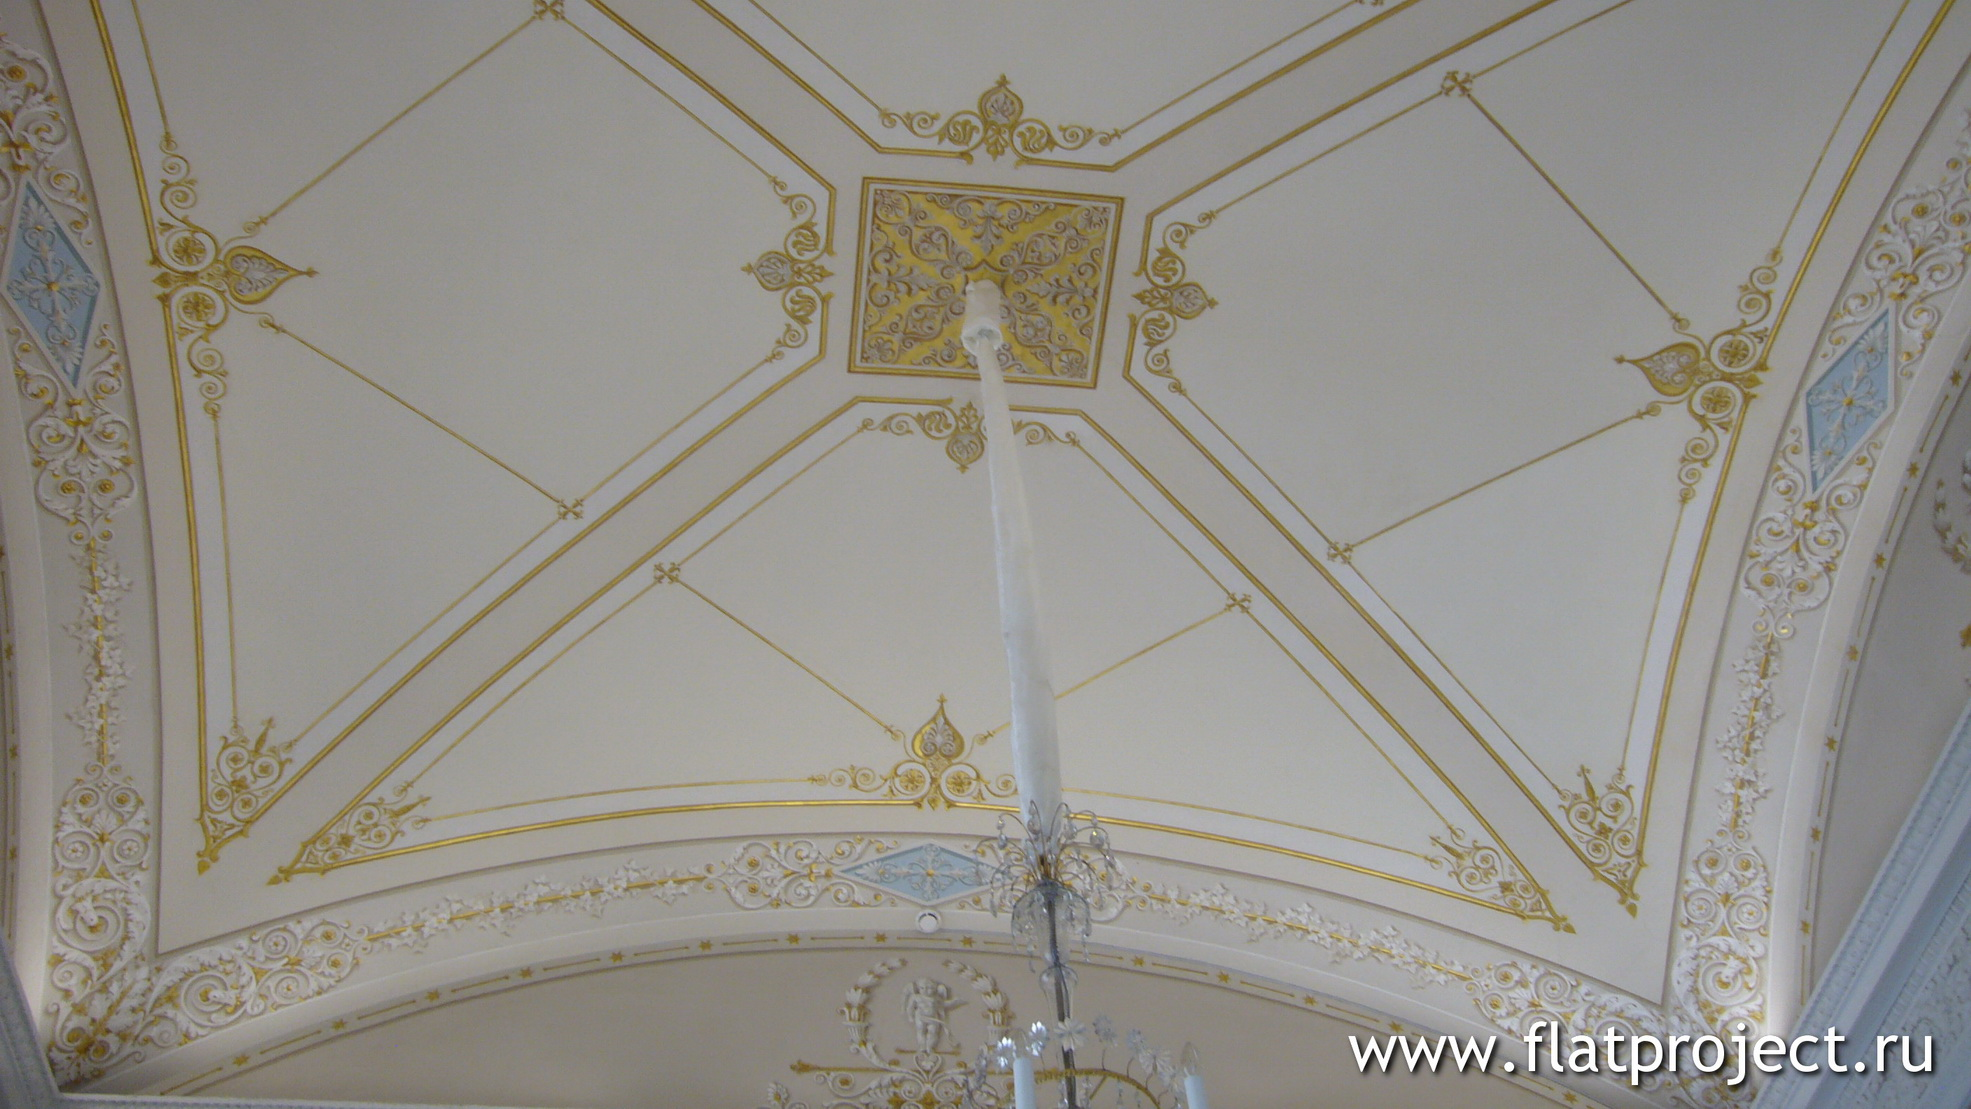 The State Hermitage museum interiors – photo 286